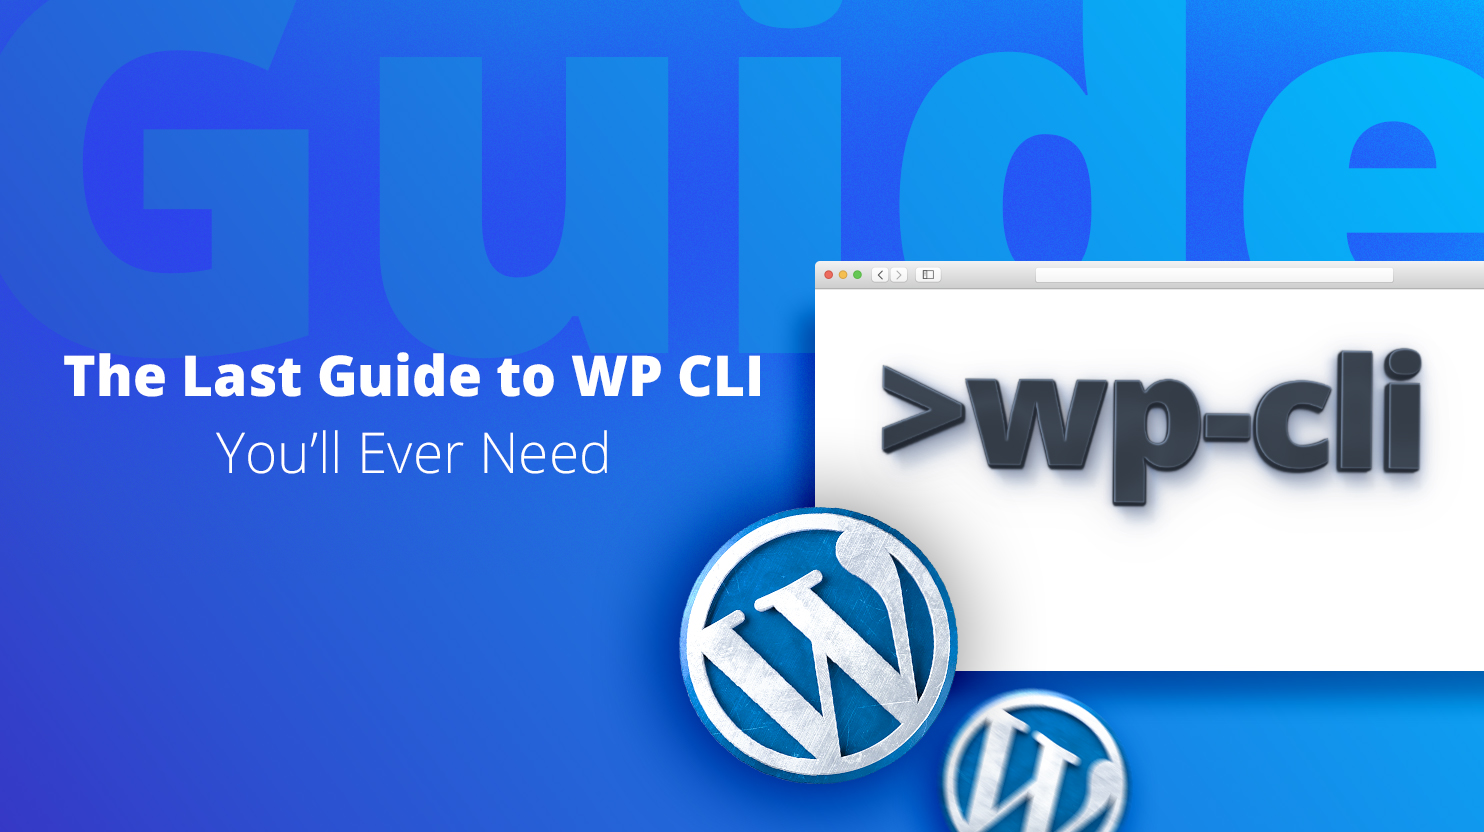 The Last Guide to WP CLI You'll Ever Need